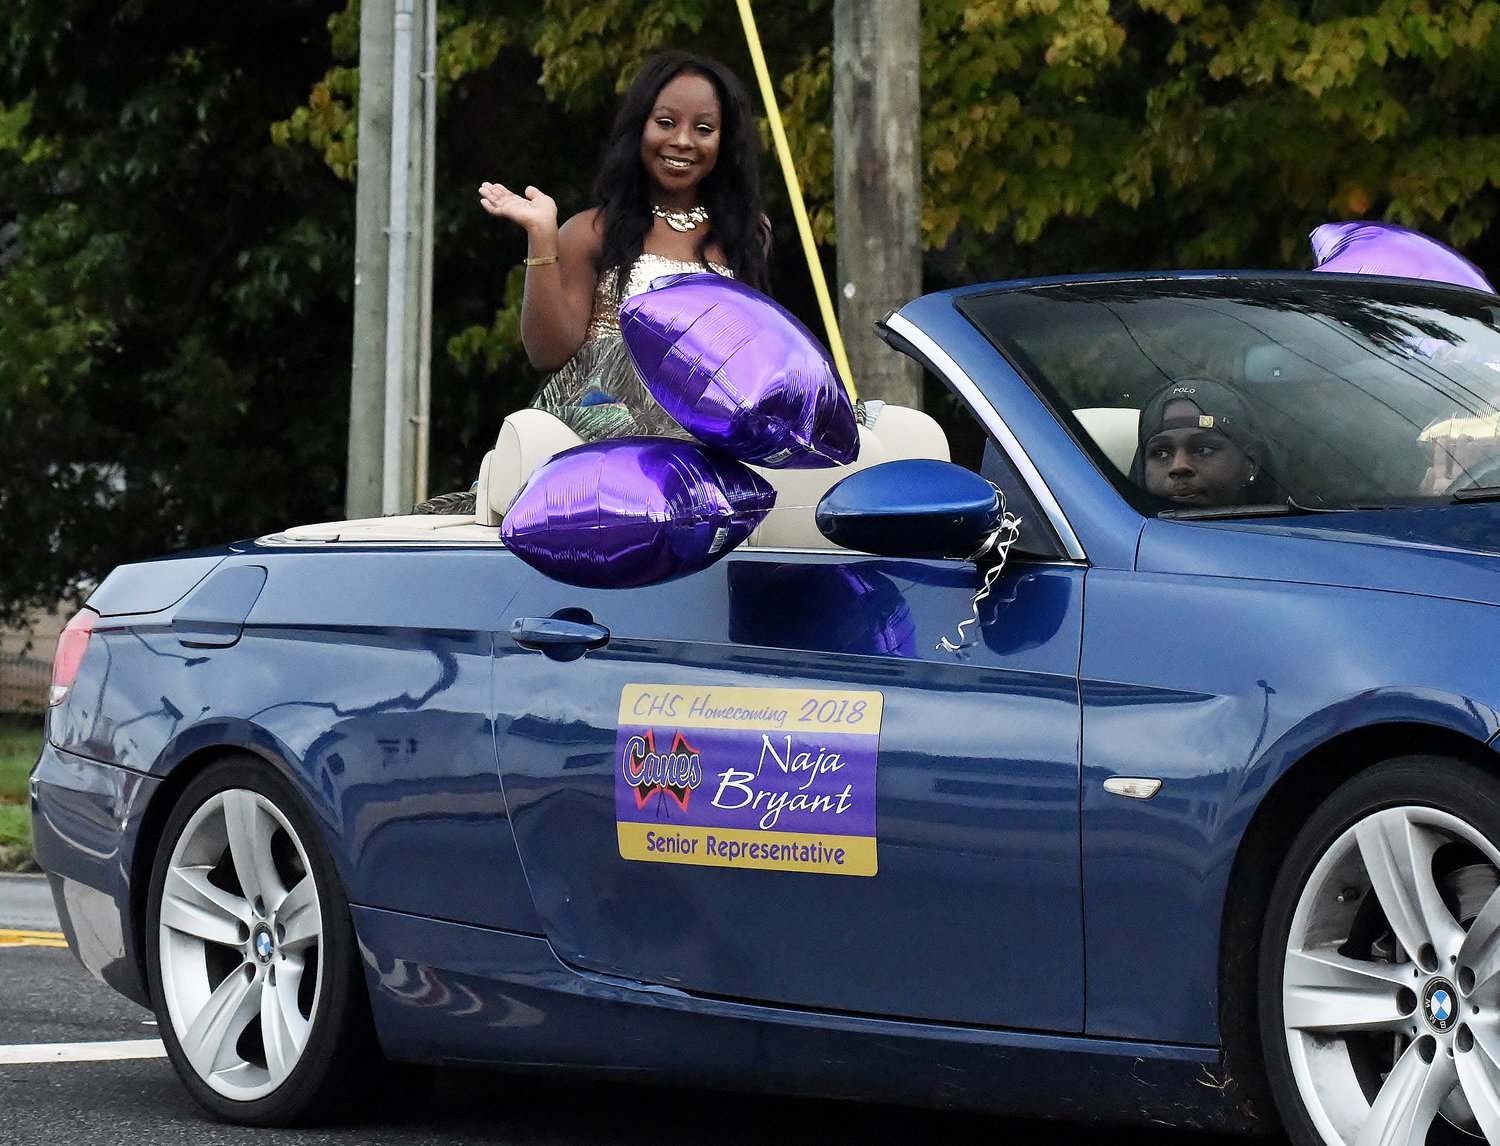 Homecoming Court senior representative Naja Bryant waves as she rides in the 2018 CHS homecoming parade.